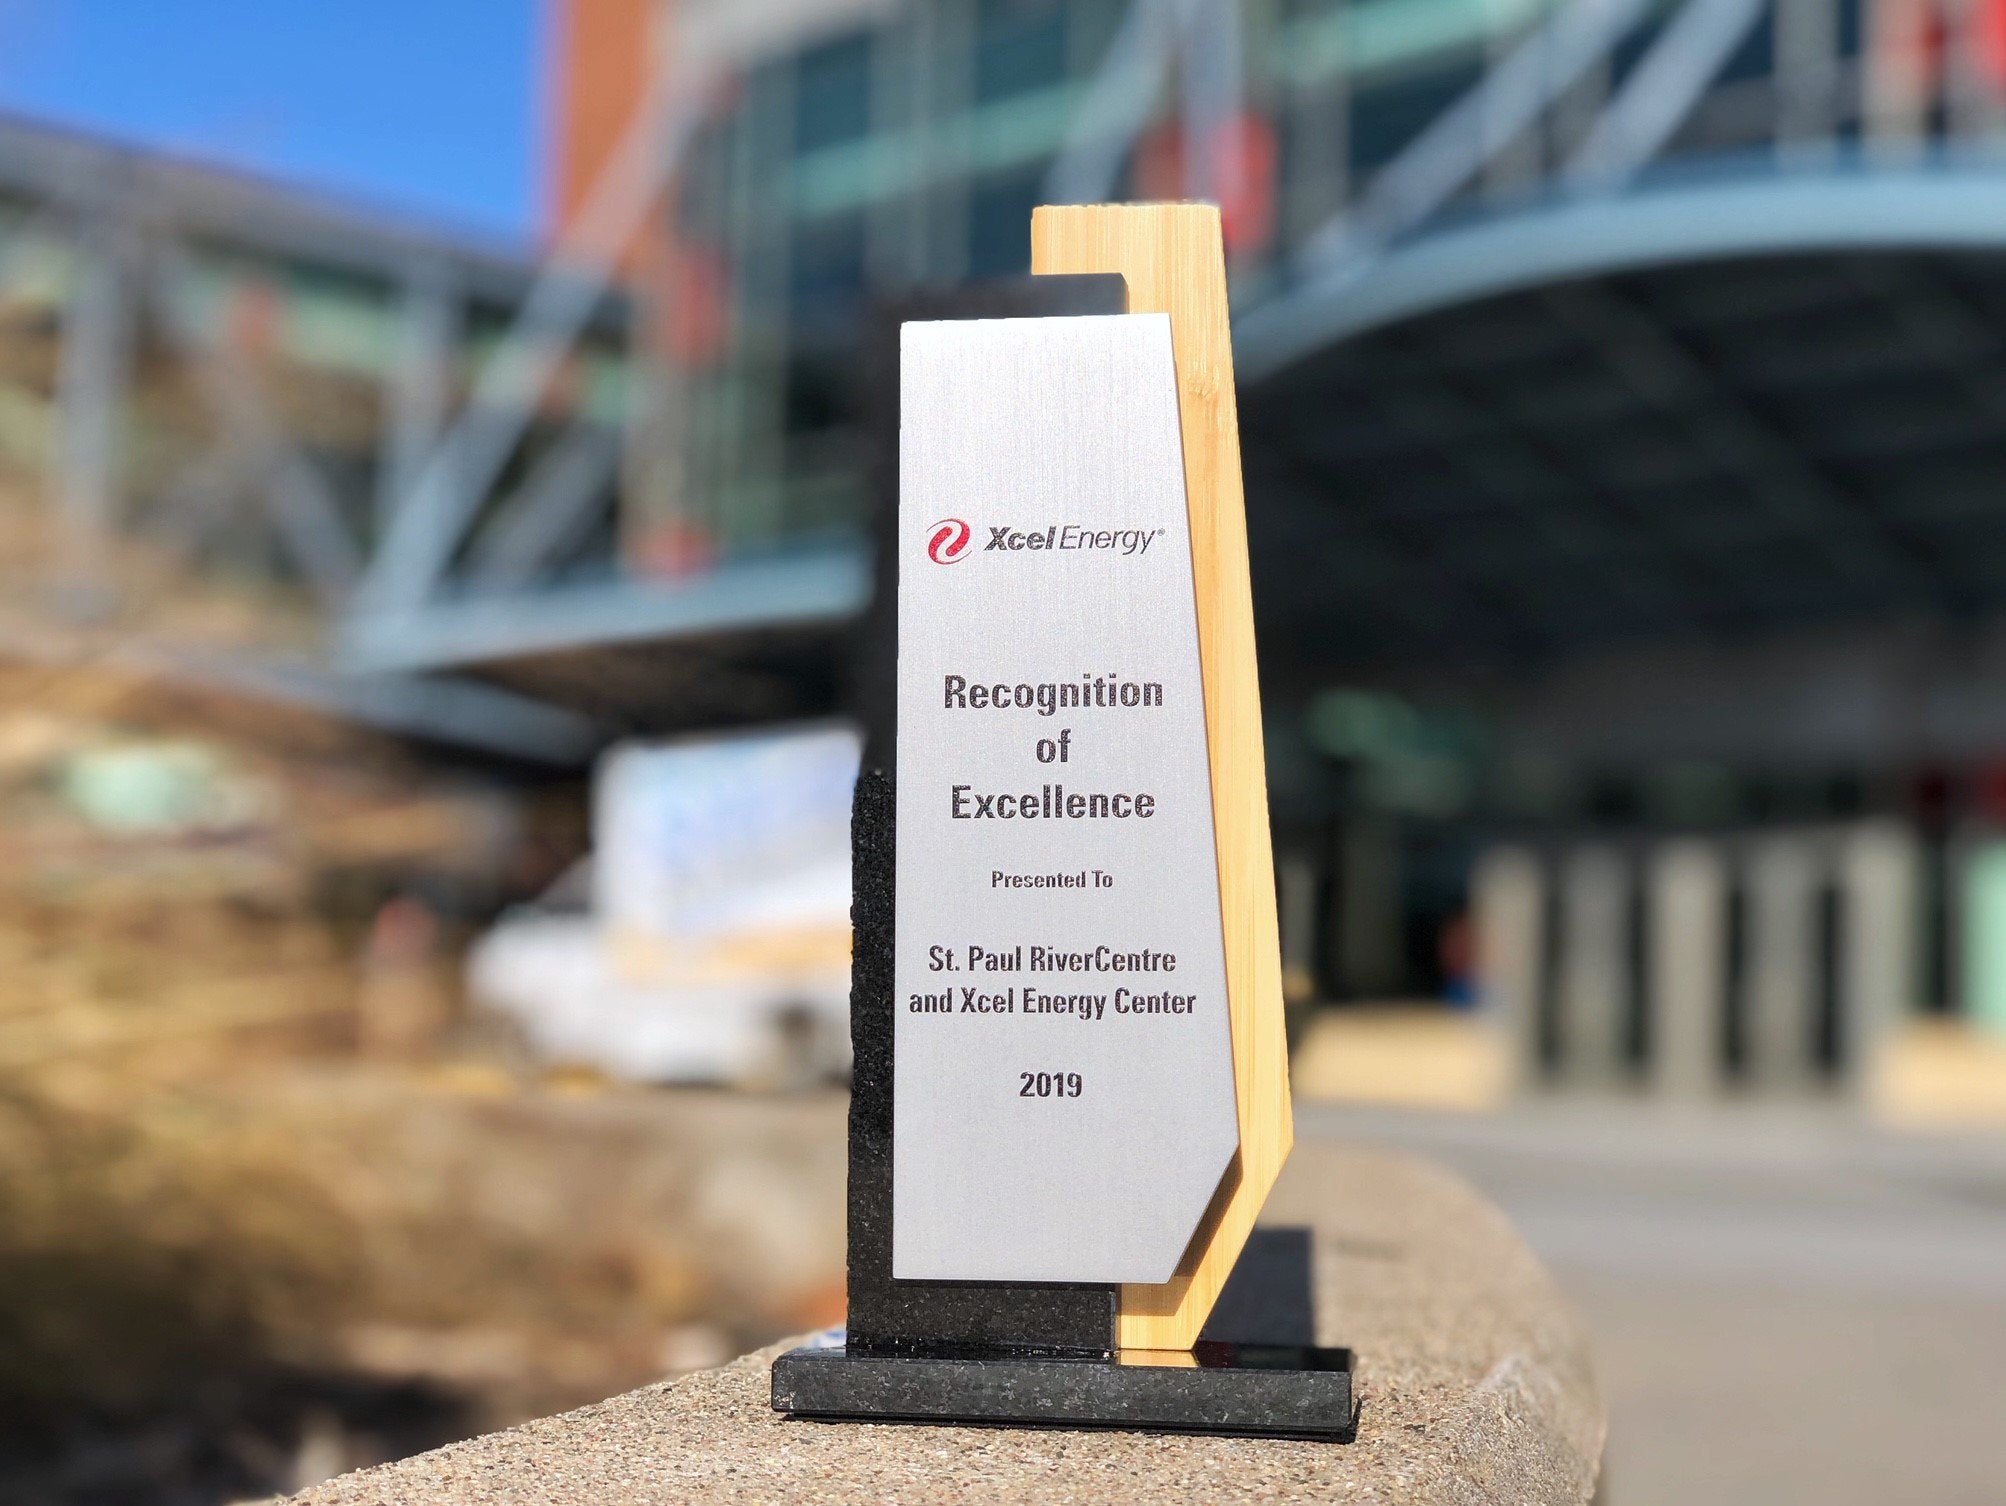 2019 Xcel Energy Recognition of Excellence Award Presented to Saint Paul RiverCentre and Xcel Energy Center